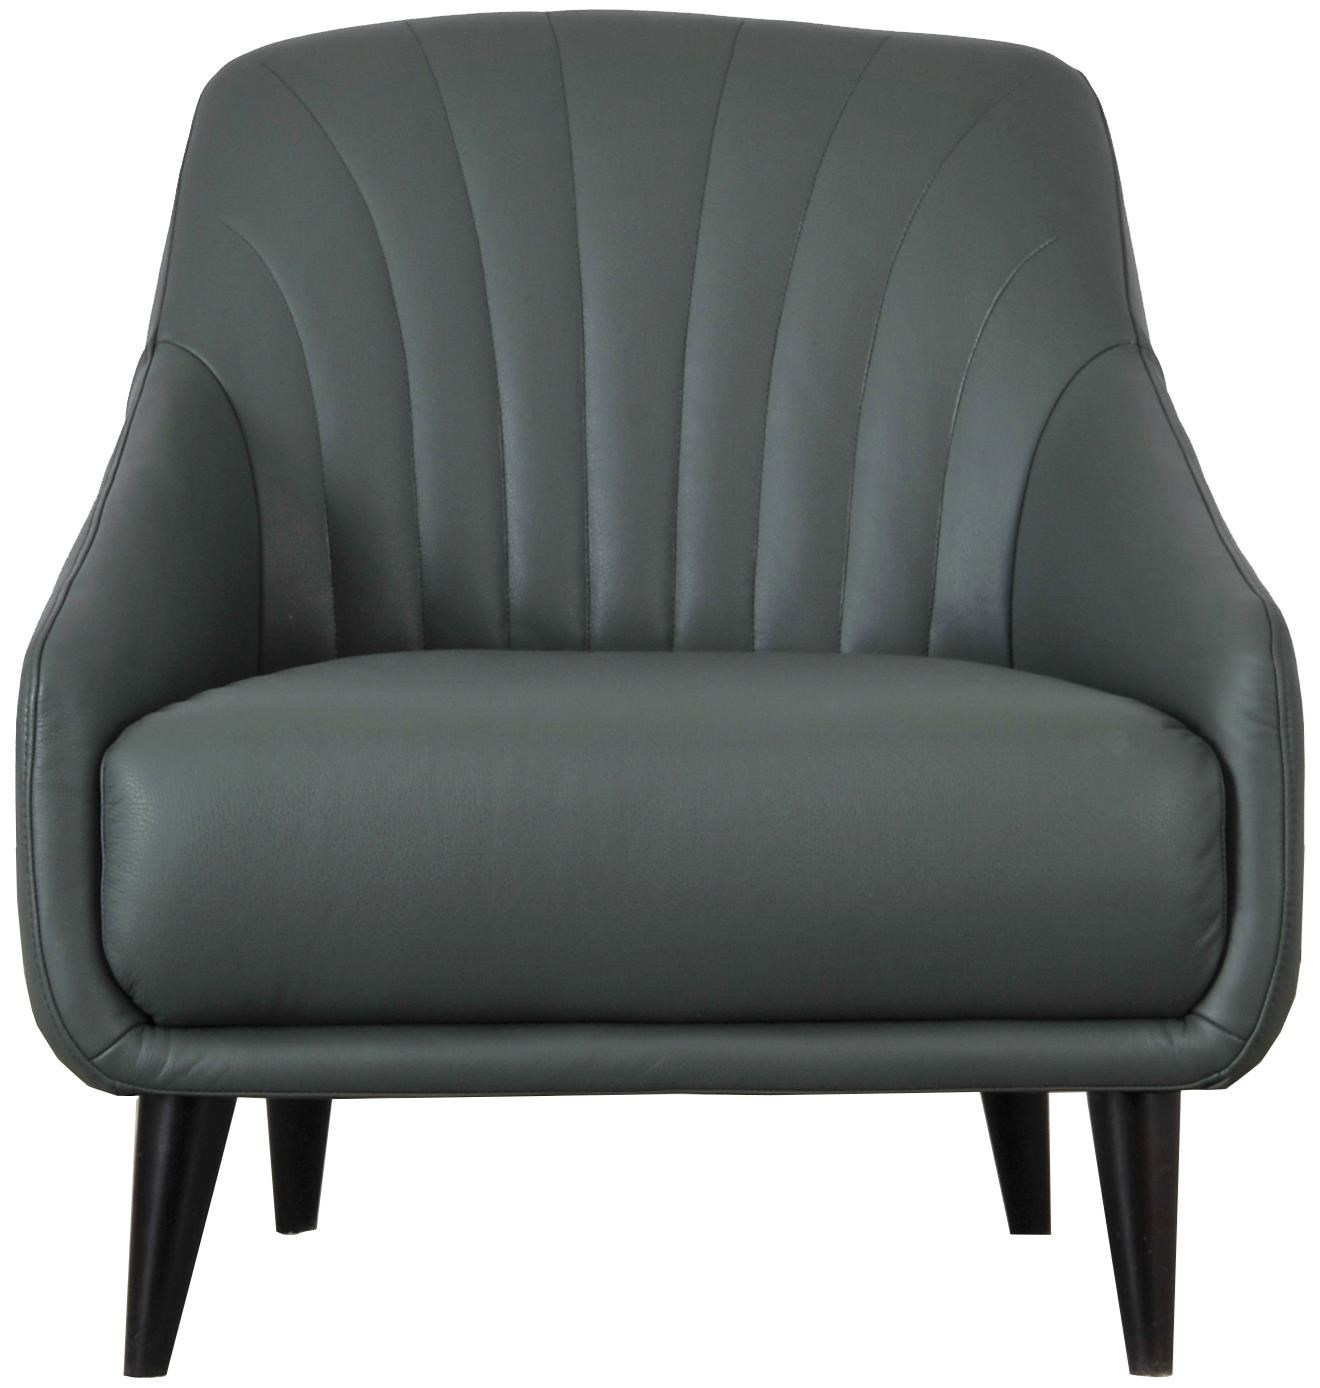 Felicita Chair by Natuzzi Editions at Williams & Kay